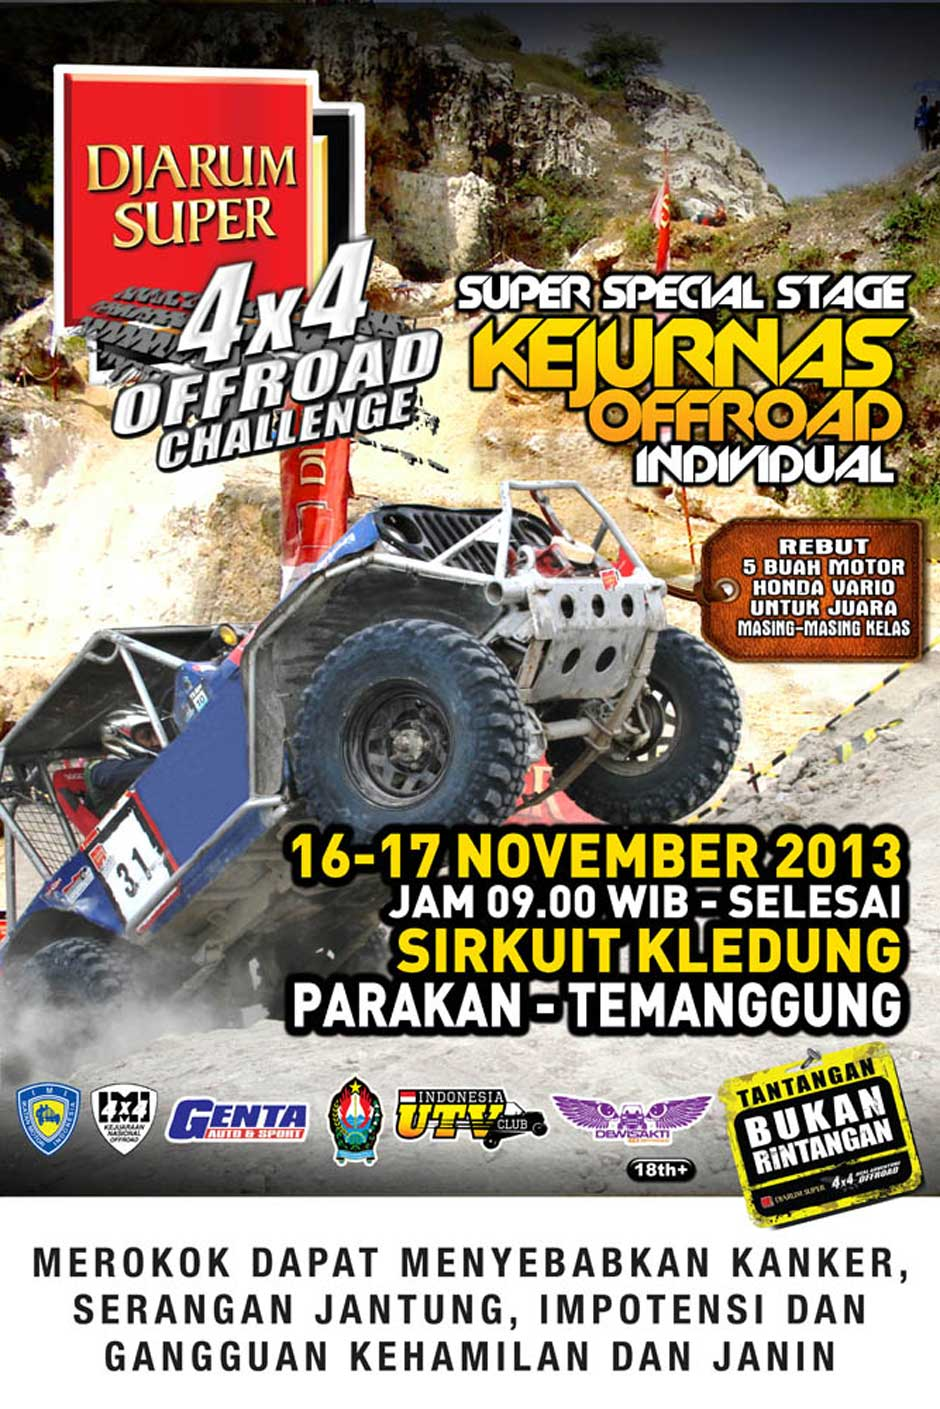 KEJUARAAN NASIONAL SUPER SPECIAL STAGE OFFROAD INDIVIDUAL